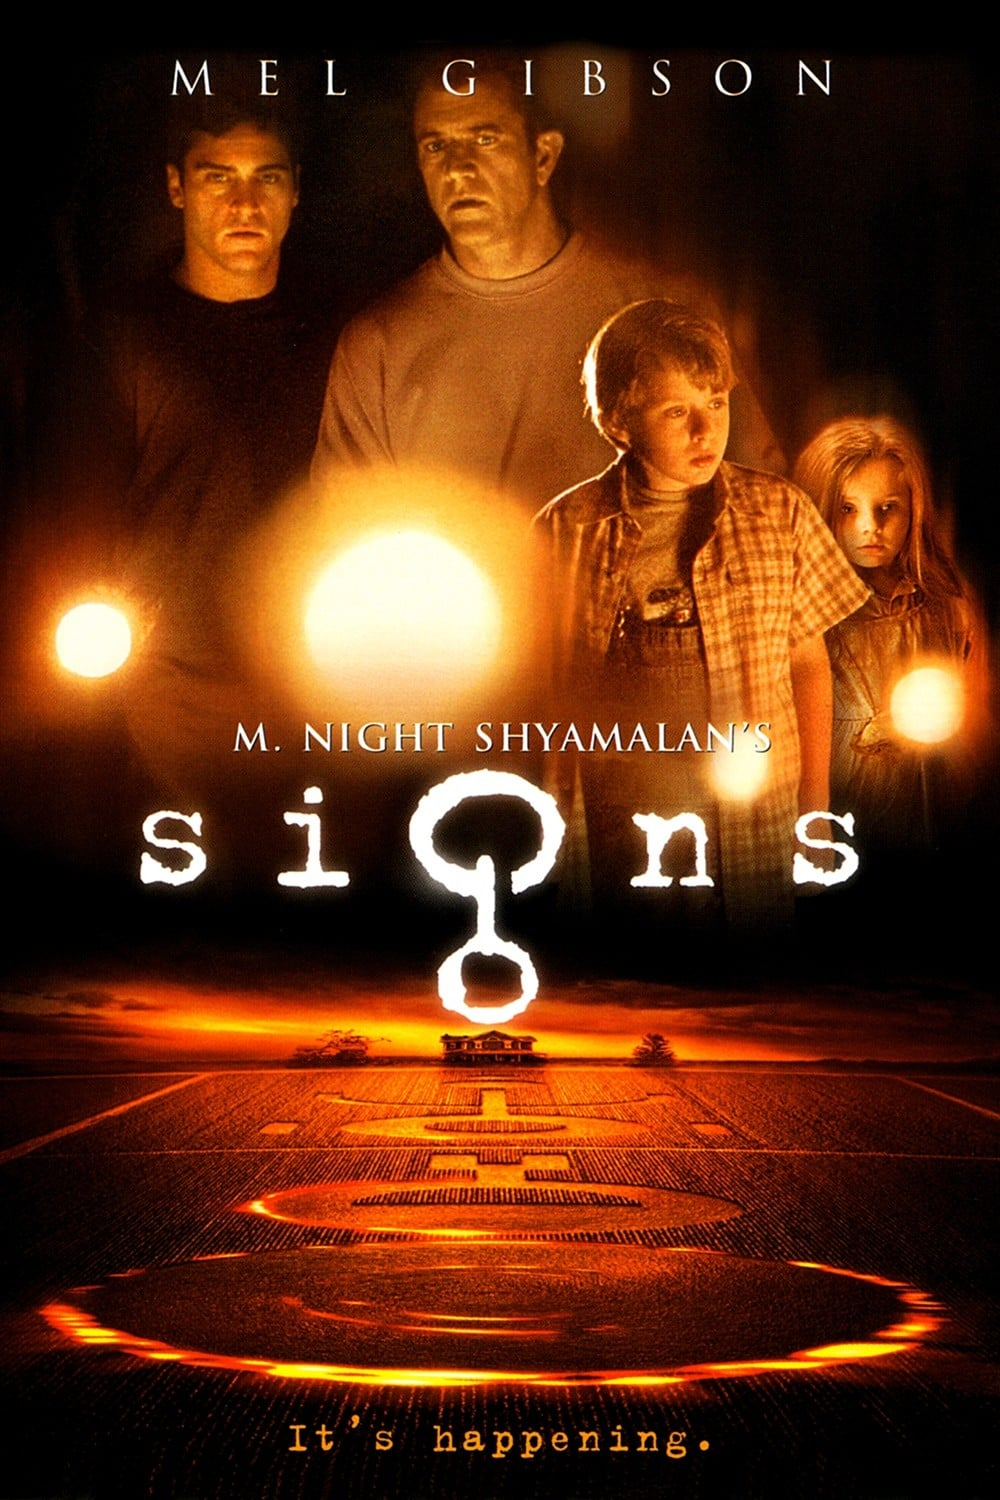 Signs (2002) - Directed by: M. Might ShyamalanStarring: Mel Gibson, Joaquin Phoenix, Rory Culkin, Abigail BreslinRated: PG13Running Time: 1h 46mTMM Score: 4 stars out of 5STRENGTHS: Theme, Acting, StorytellingWEAKNESSES: Heavy Handedness